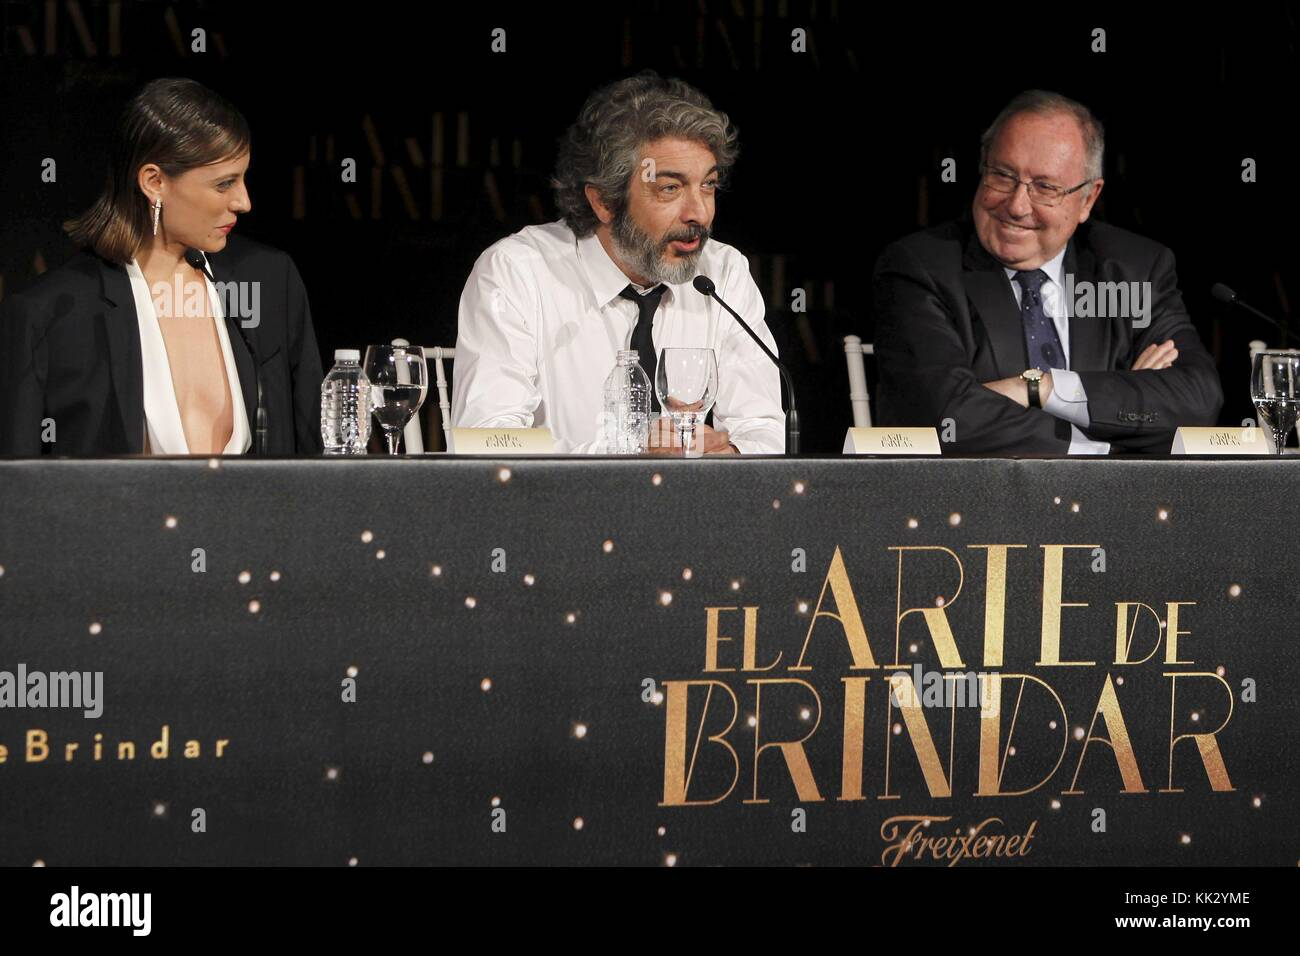 Spanish actress Michelle Jenner (L), Argentine actor Ricardo Darin (C) and president of Freixenet 'cava' - Stock Image